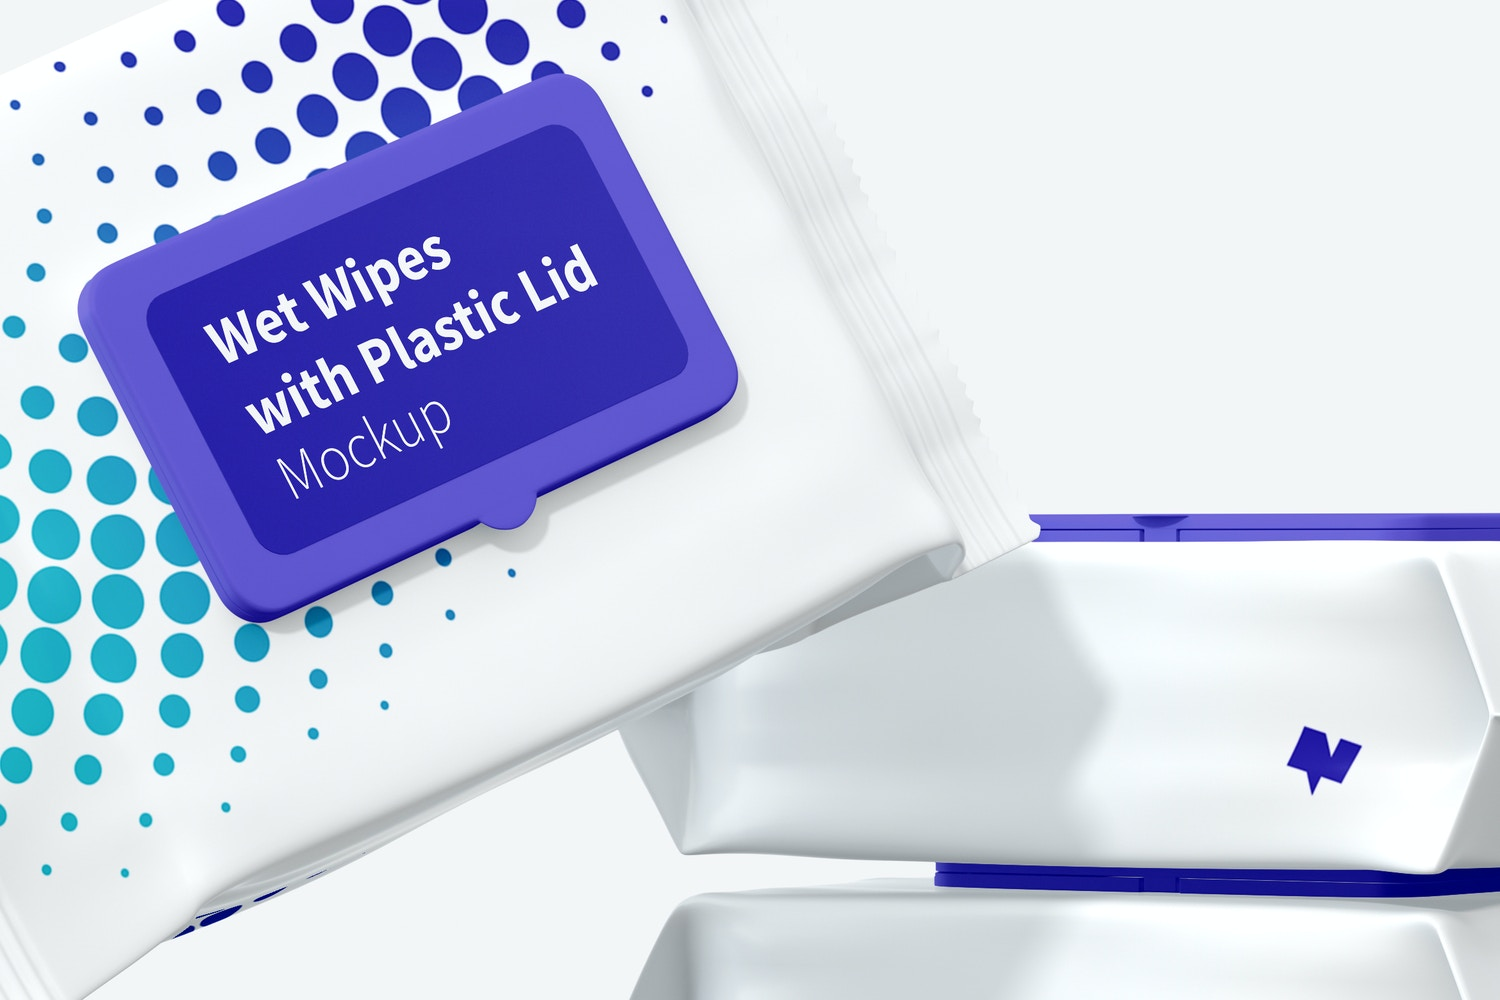 Wet Wipes Large Packaging with Plastic Lid Set Mockup